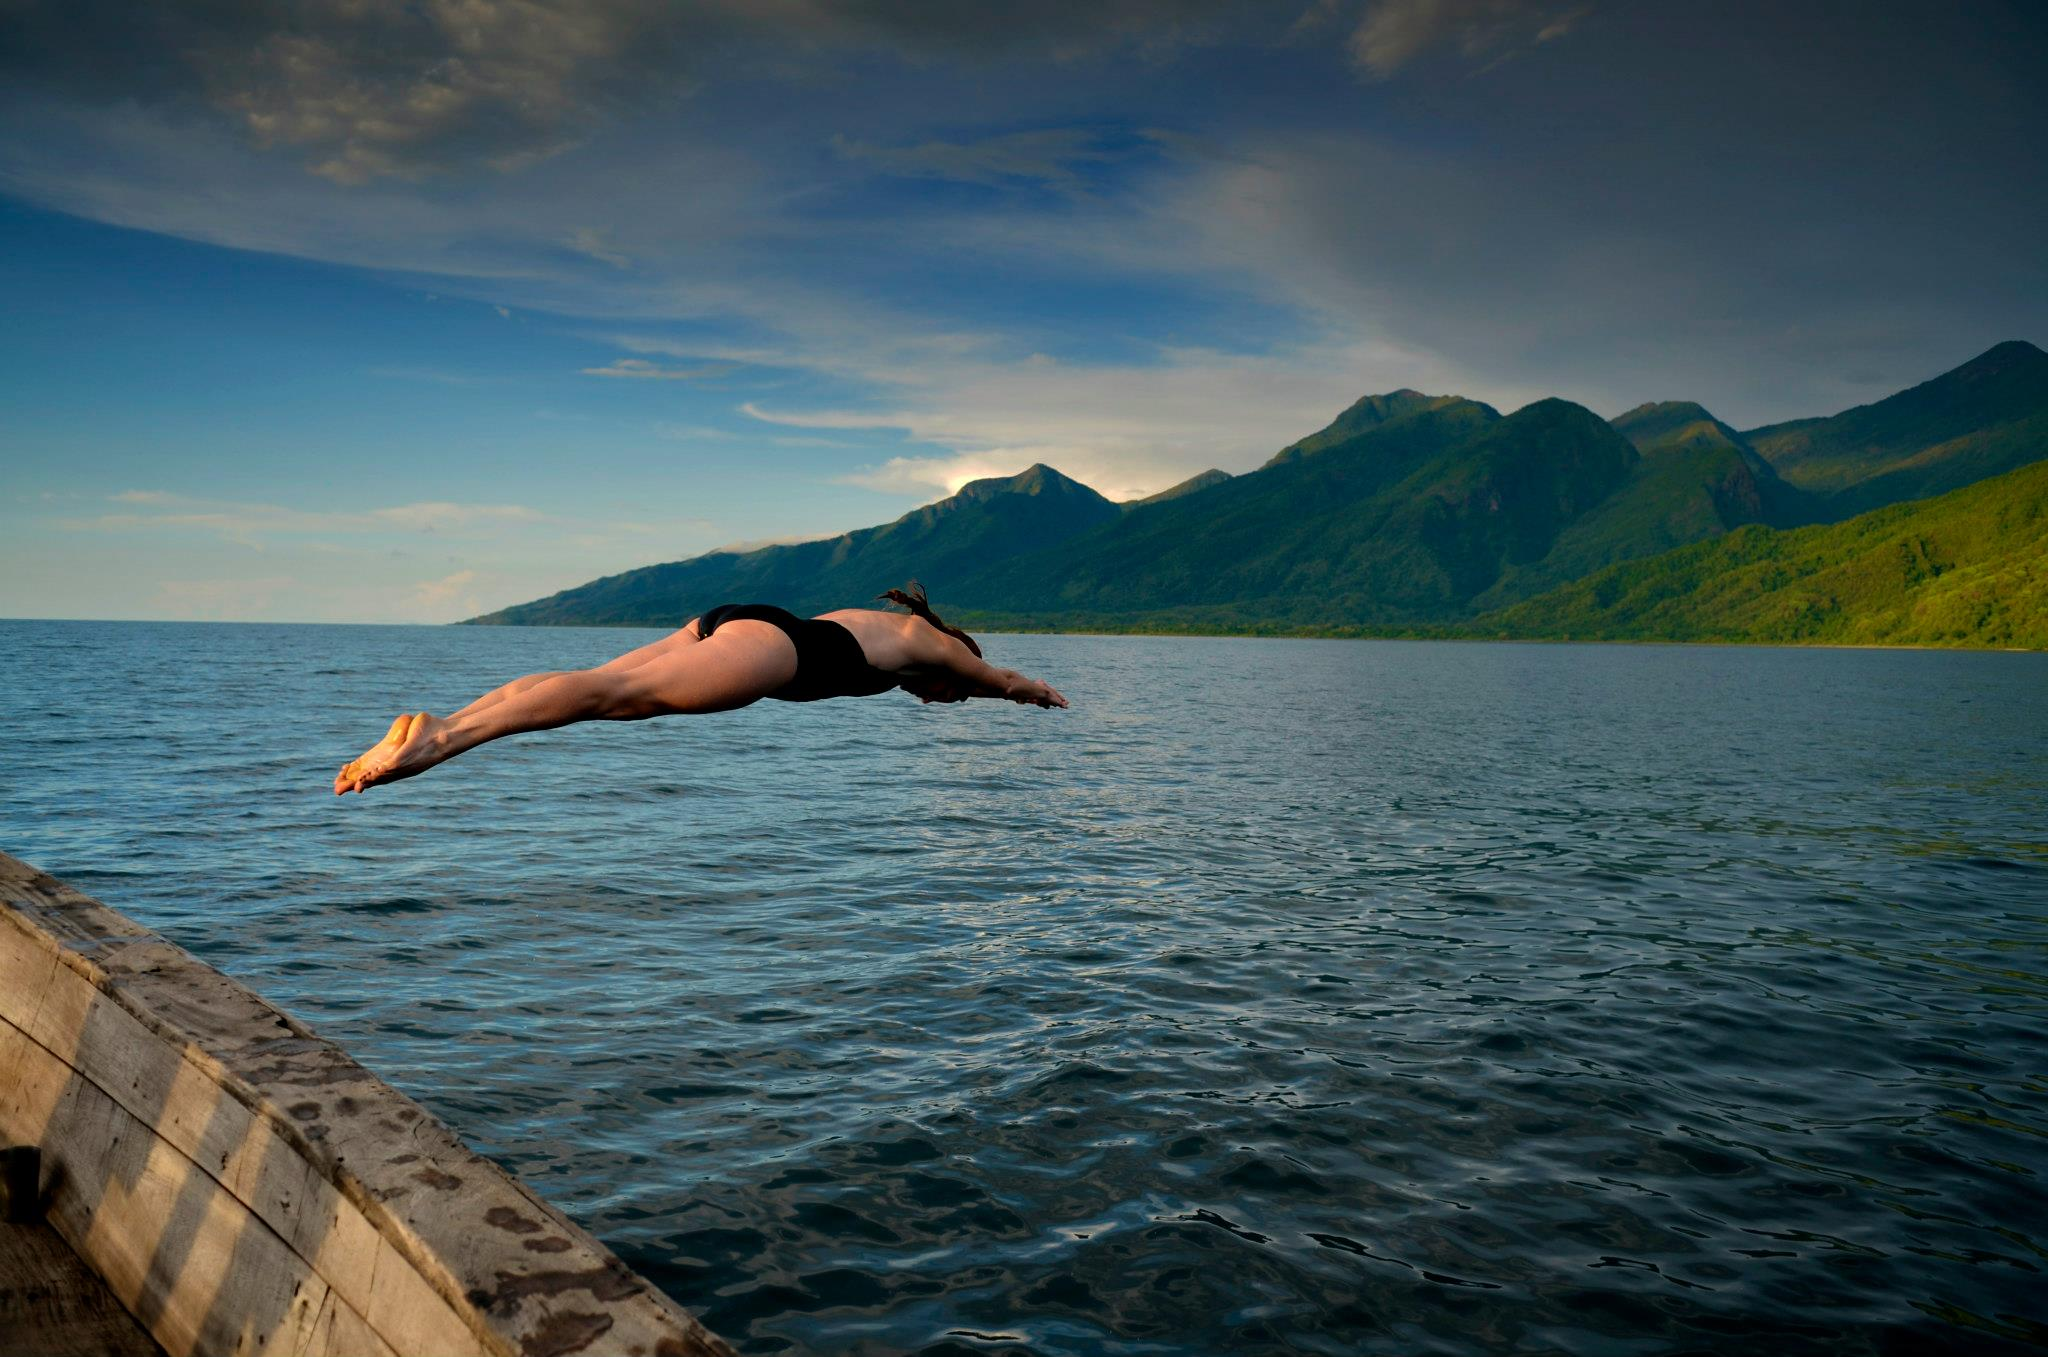 Kim diving into Lake Tanganyika with the Mahale Mountains in the background